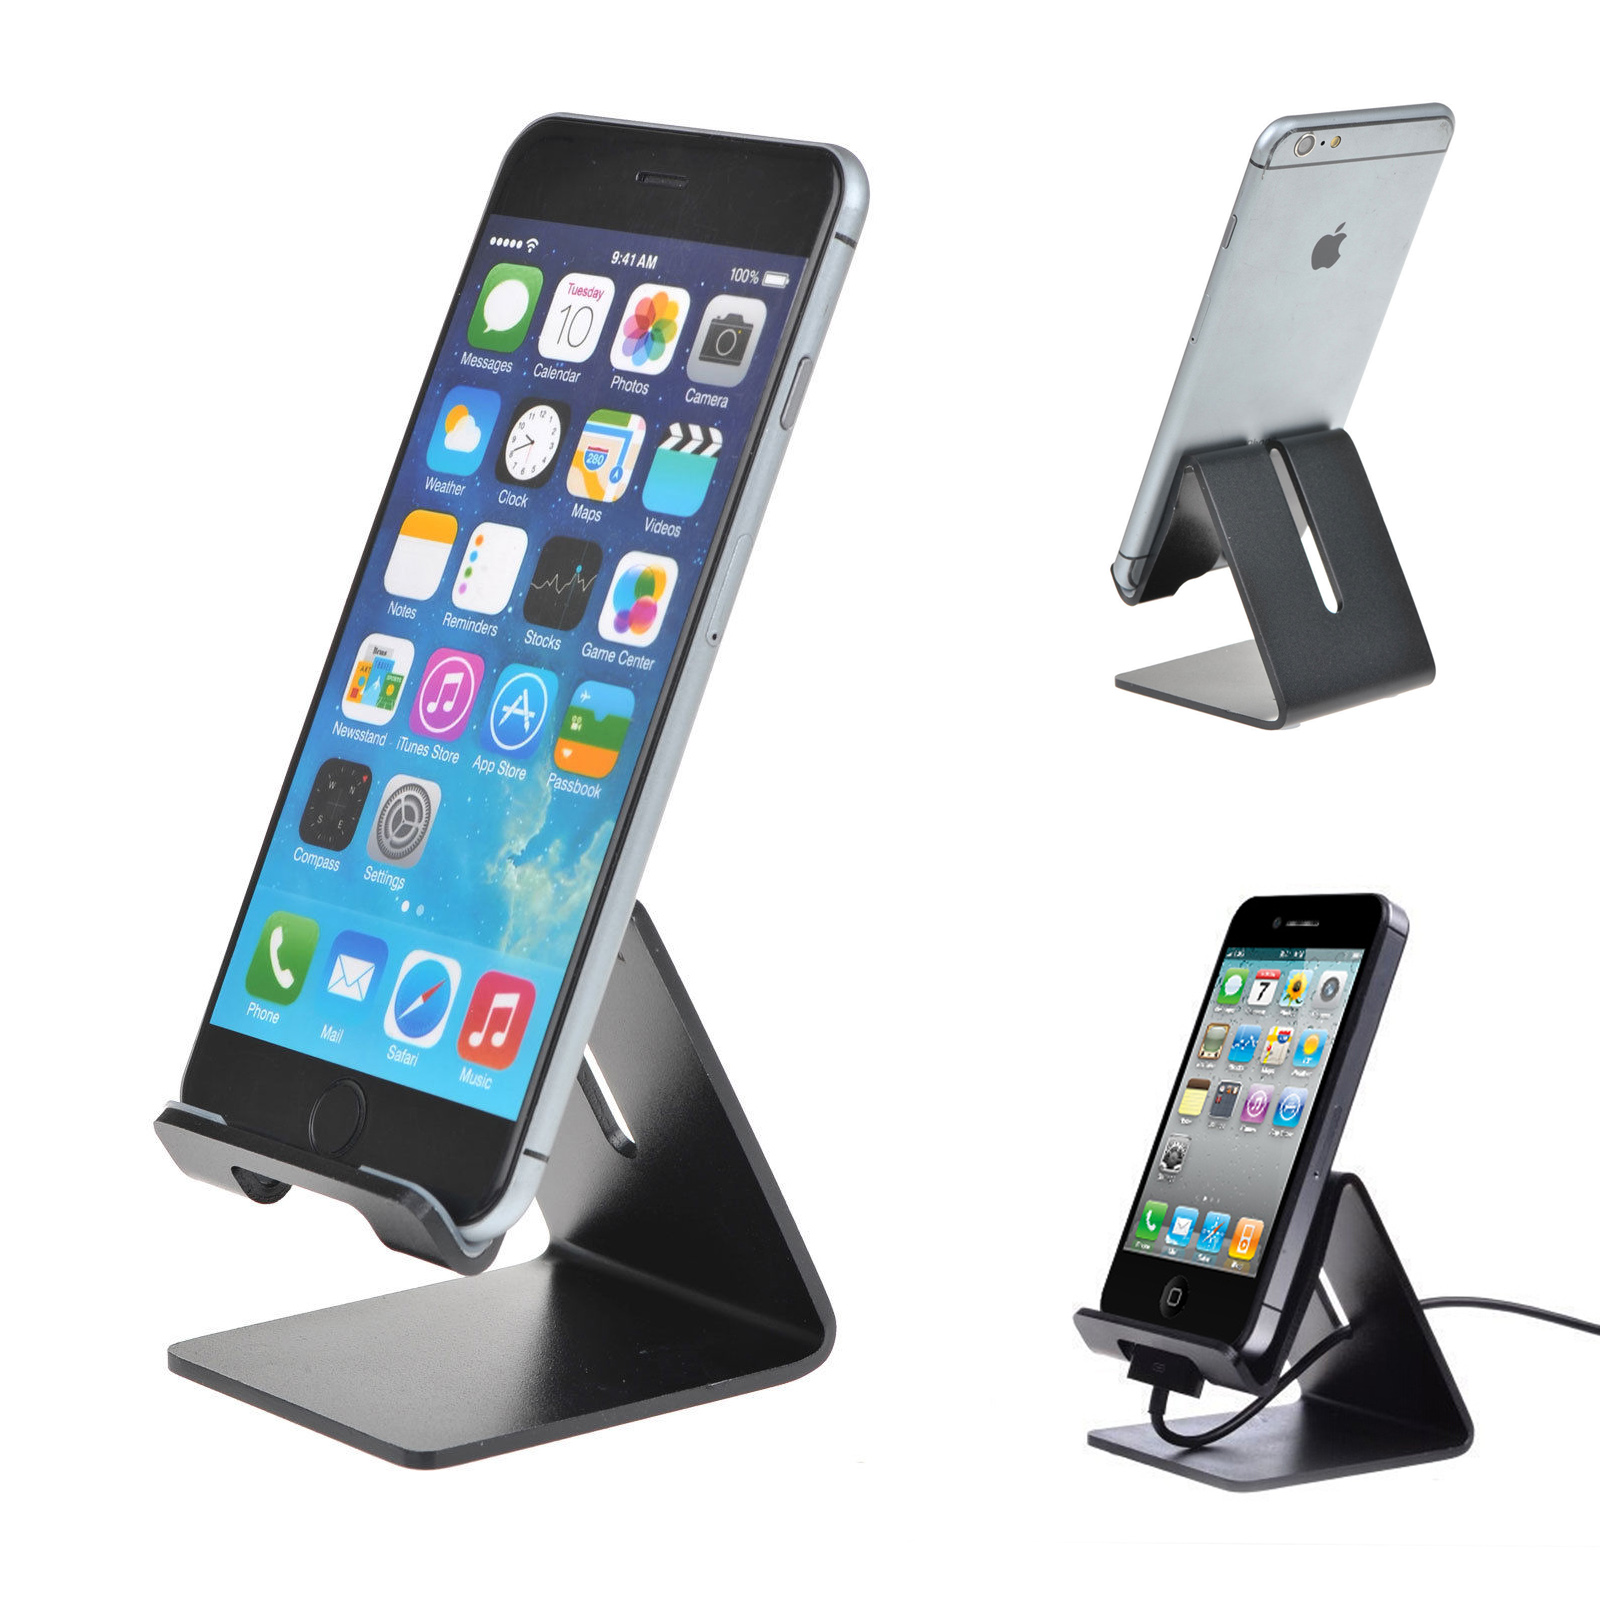 Universal Desk Aluminum Metal Portable Stand Holder Mount For Phone and Tablet